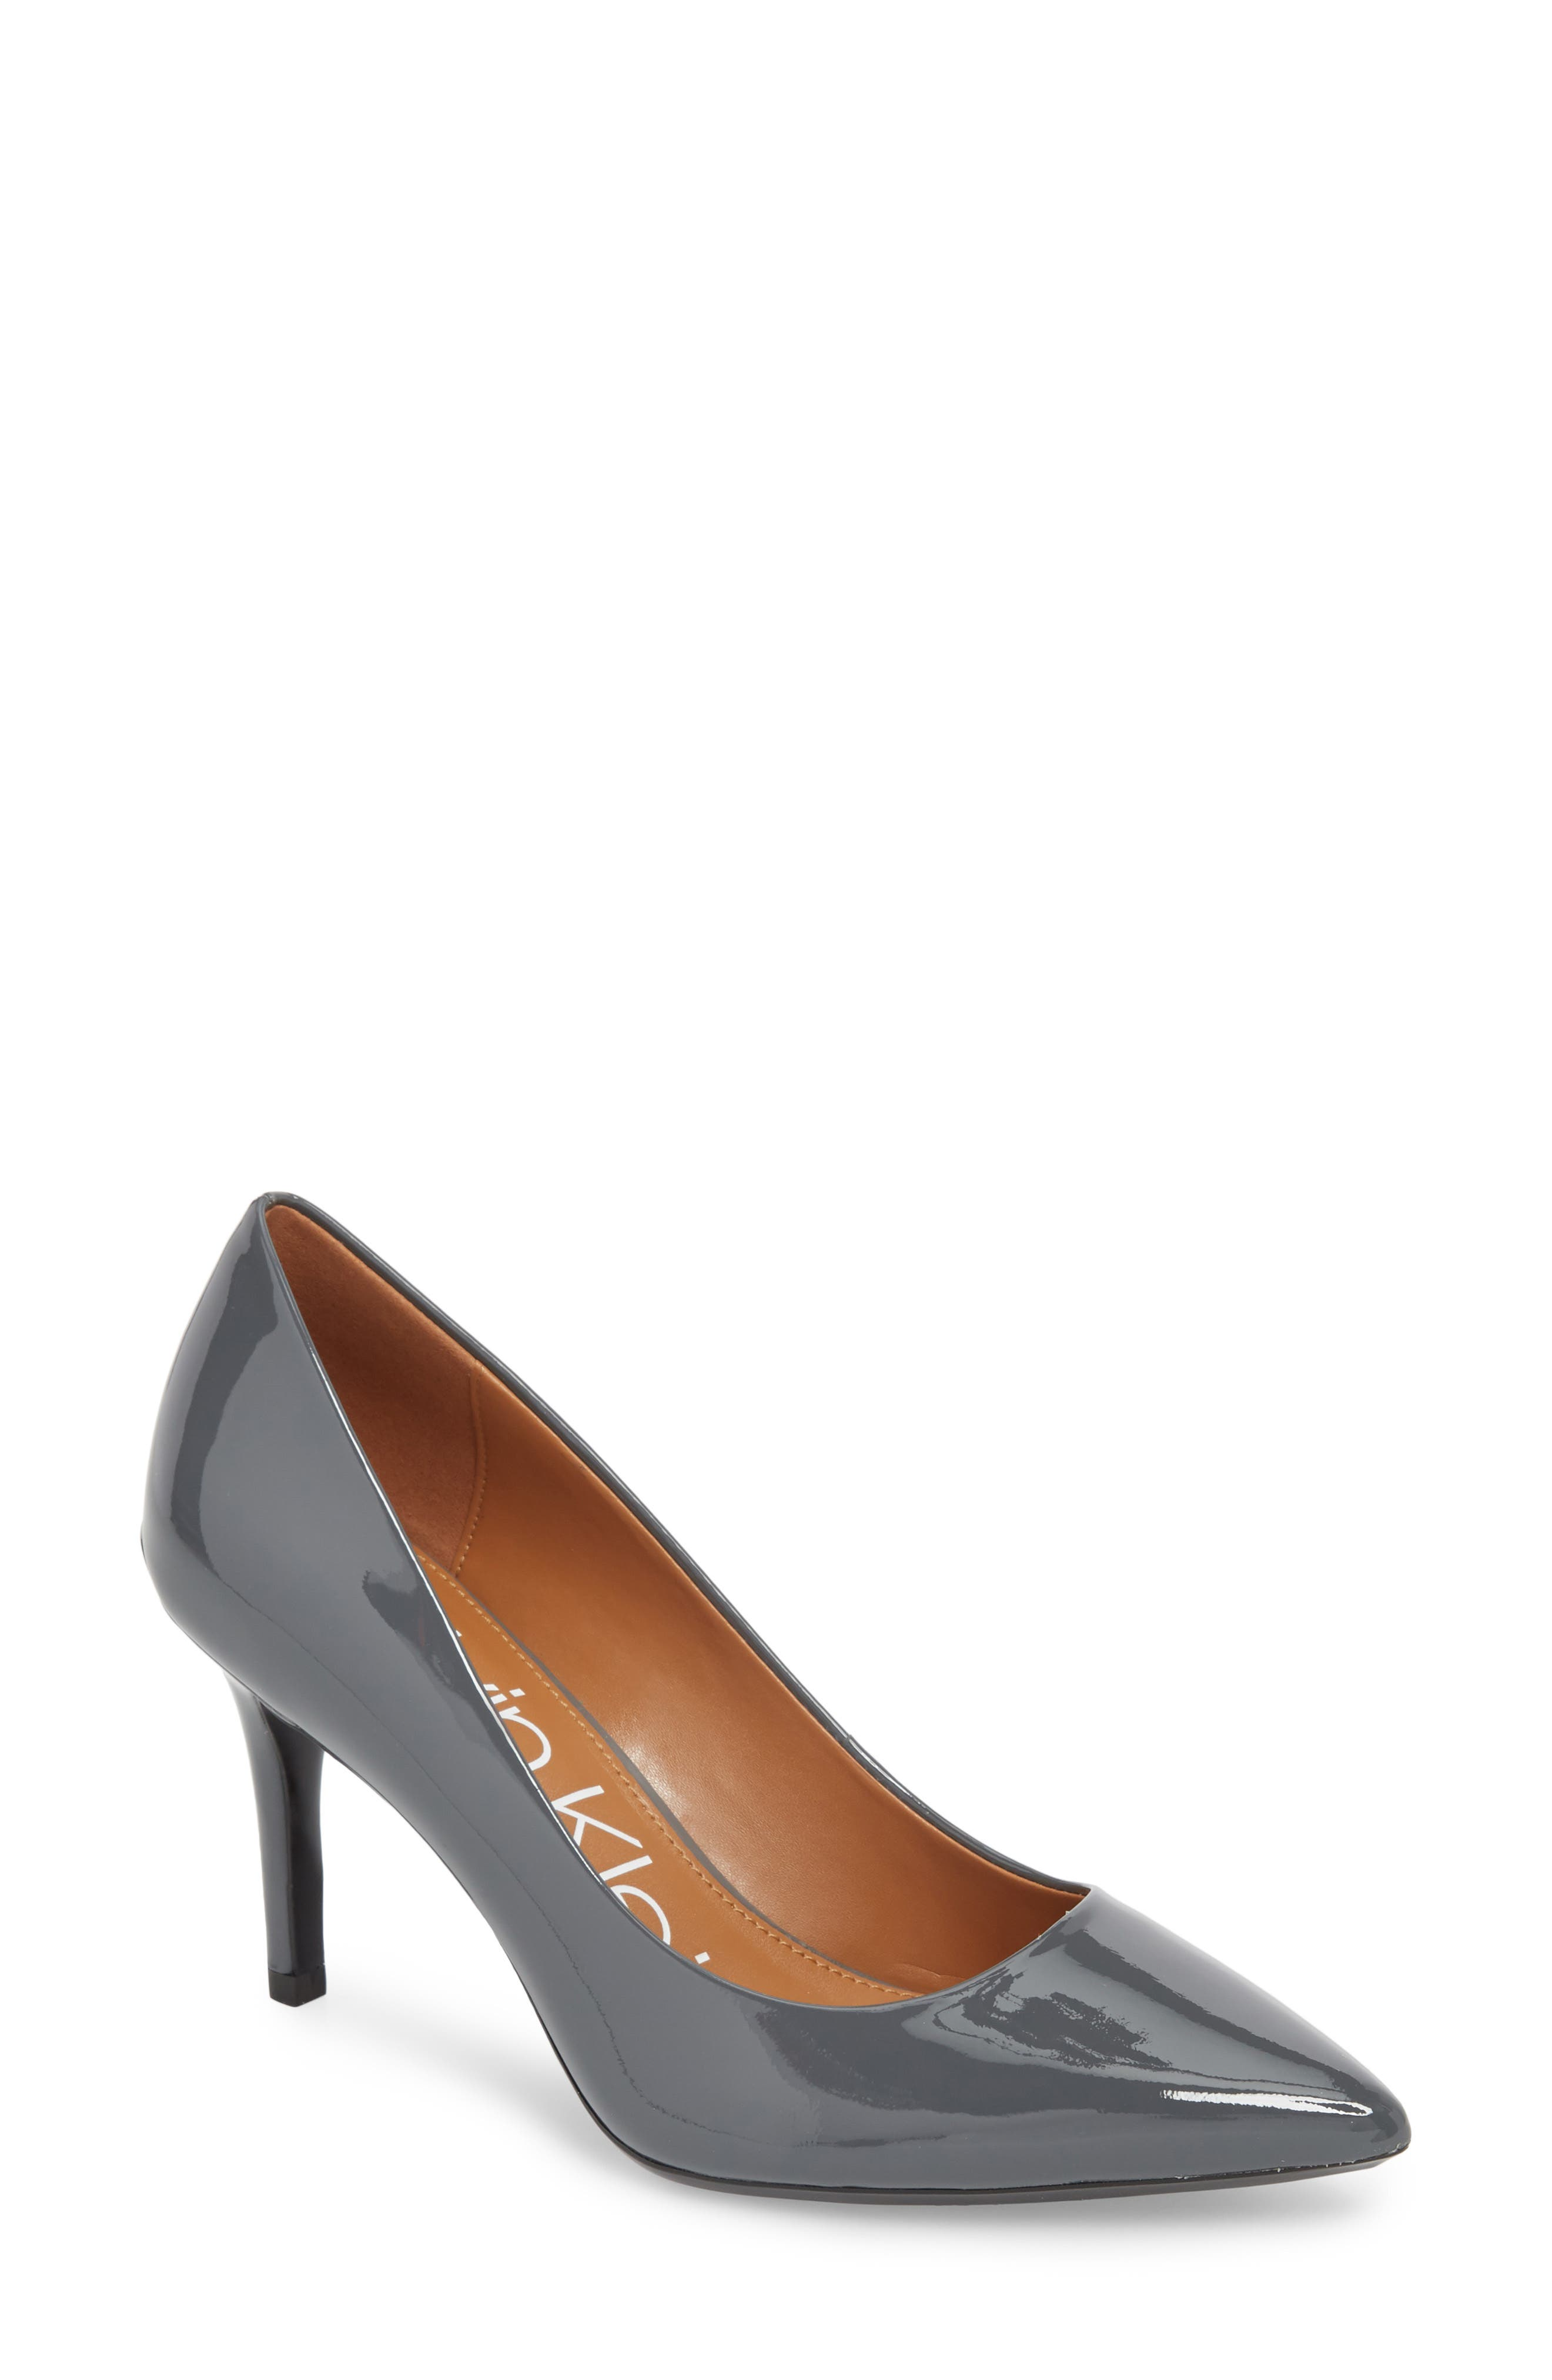 'Gayle' Pointy Toe Pump, Main, color, STEEL GREYSTONE LEATHER